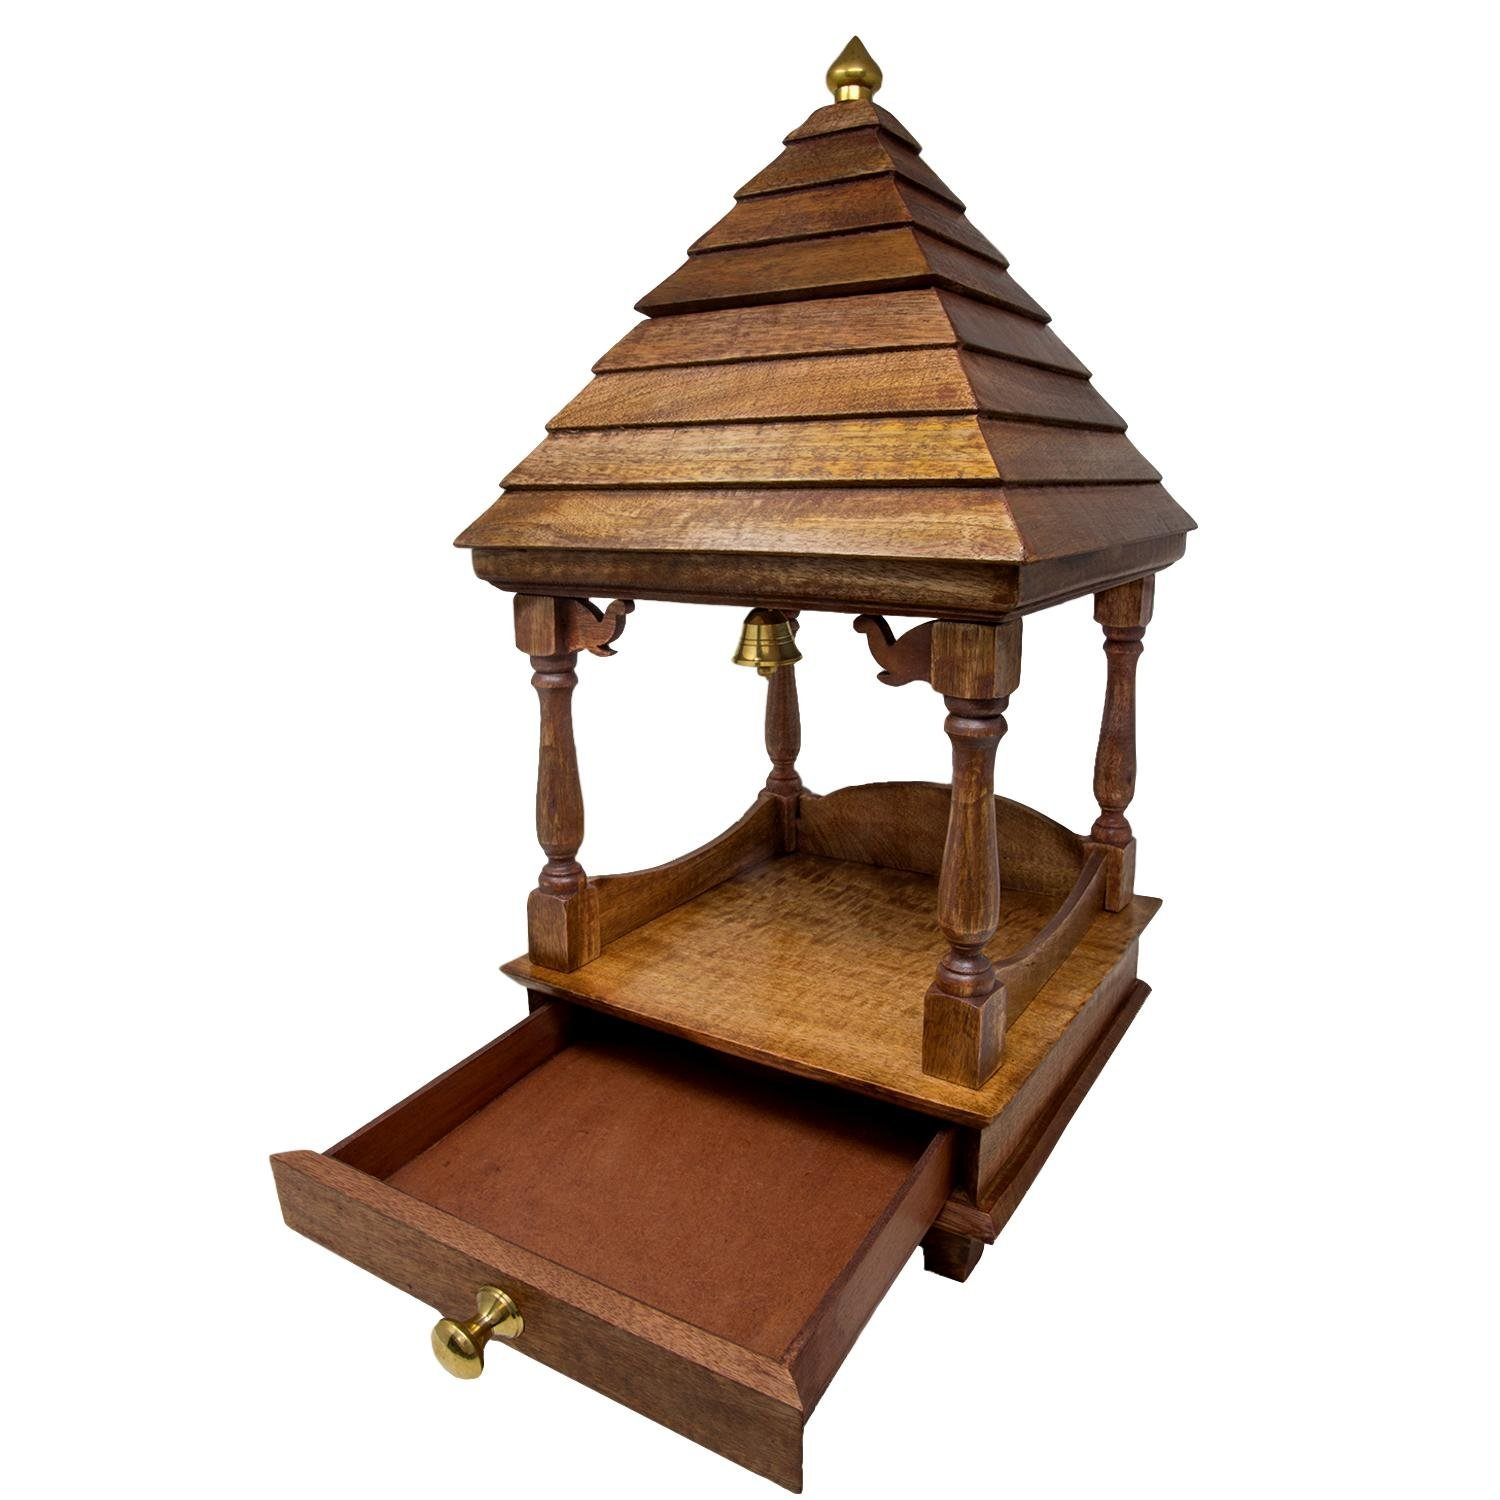 Floomre Wood Handcrafted Temple (Brown_20 Inch X 10 Inch X 10 Inch)